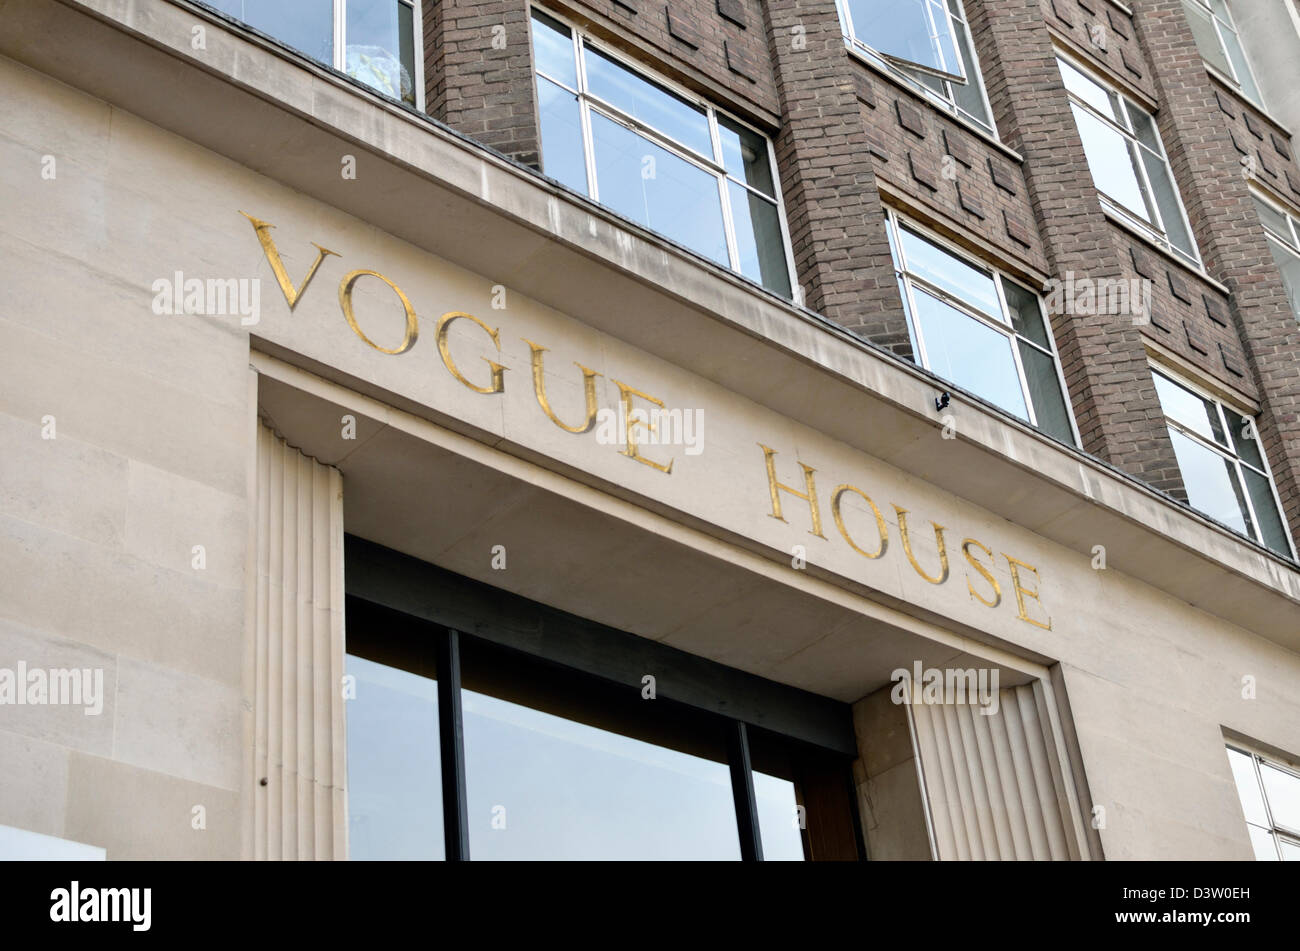 vogue house in hanover square london uk stock photo